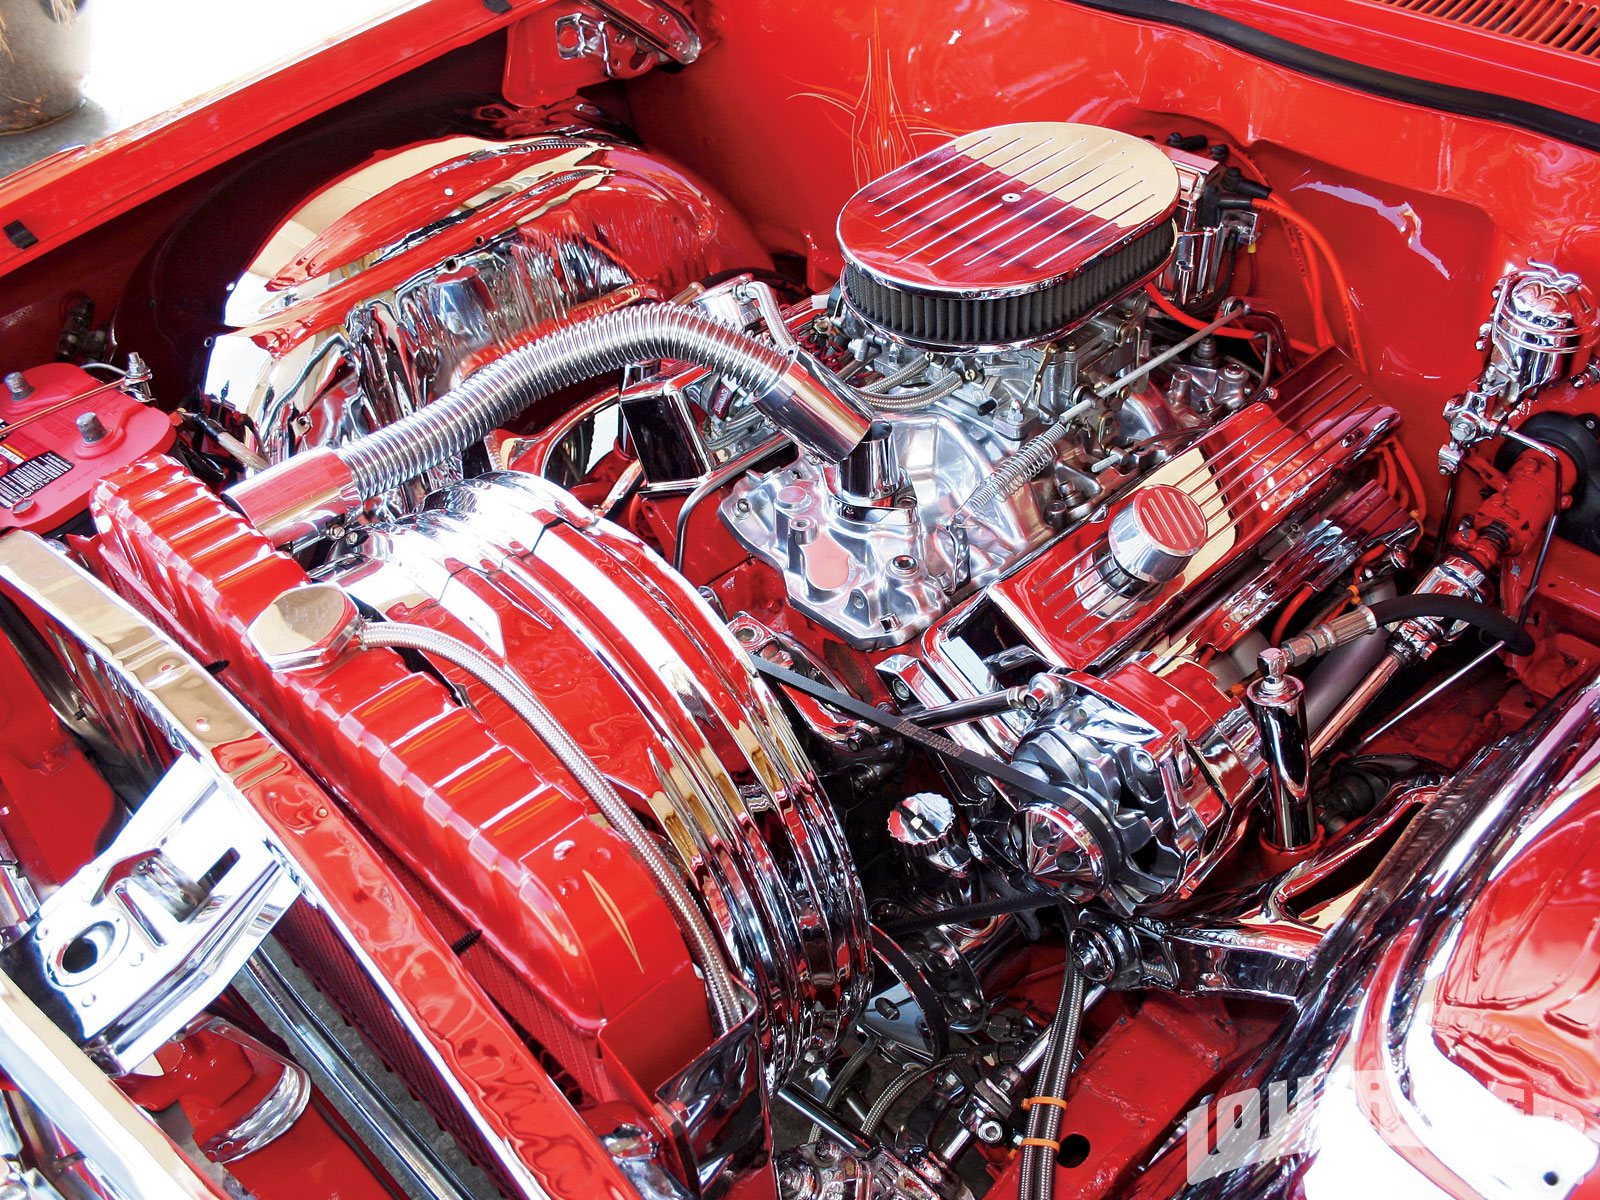 1962 Chevrolet Impala Ss Gm 327 C I D V8 Engine